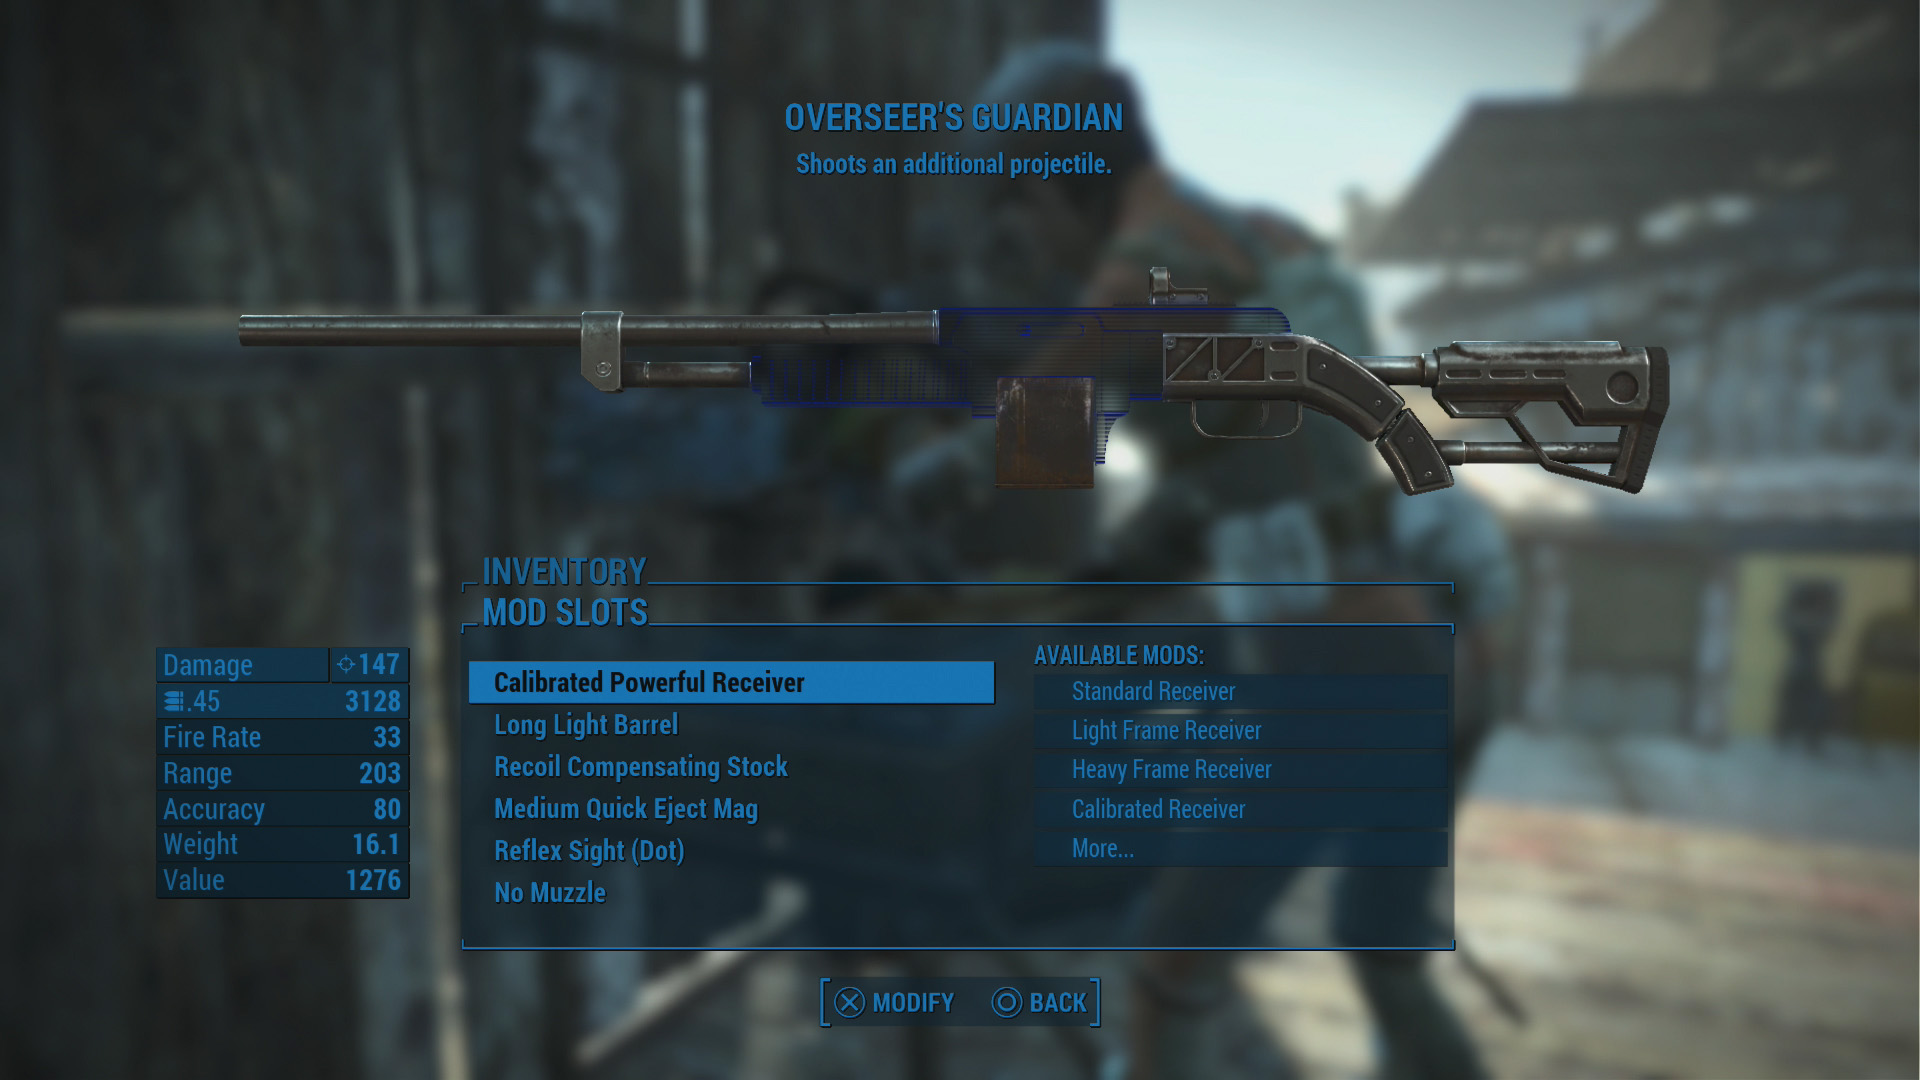 The Best Weapon in Fallout 4 - How to get Overseer's Guardian | USgamer